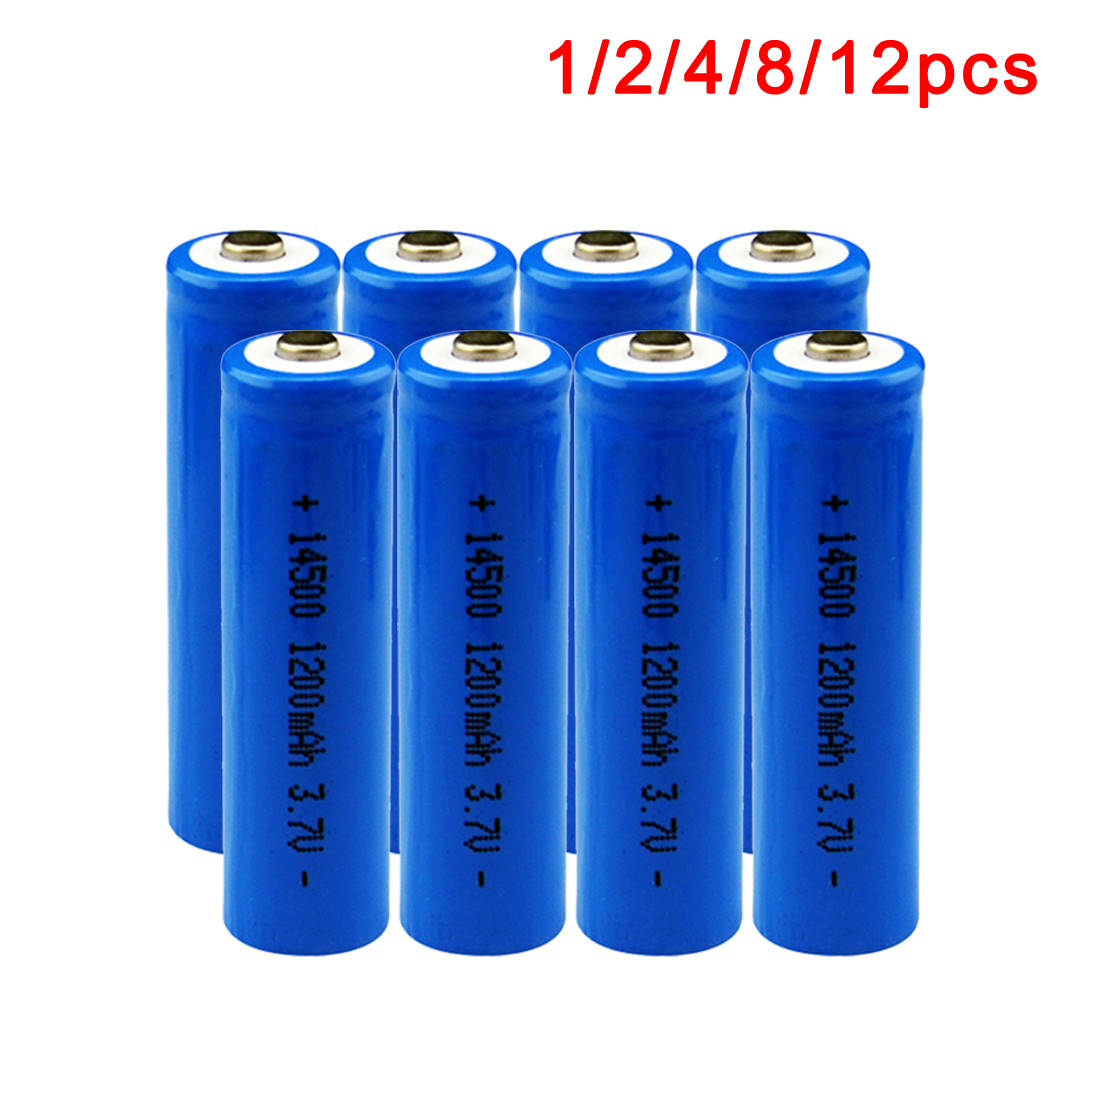 Centechia 1/2 /4/8/12pcs/set Capacitance 14500 Battery 3.7V 1300mAh Rechargeable Battery for Led Flashlight Batery Battery est ...